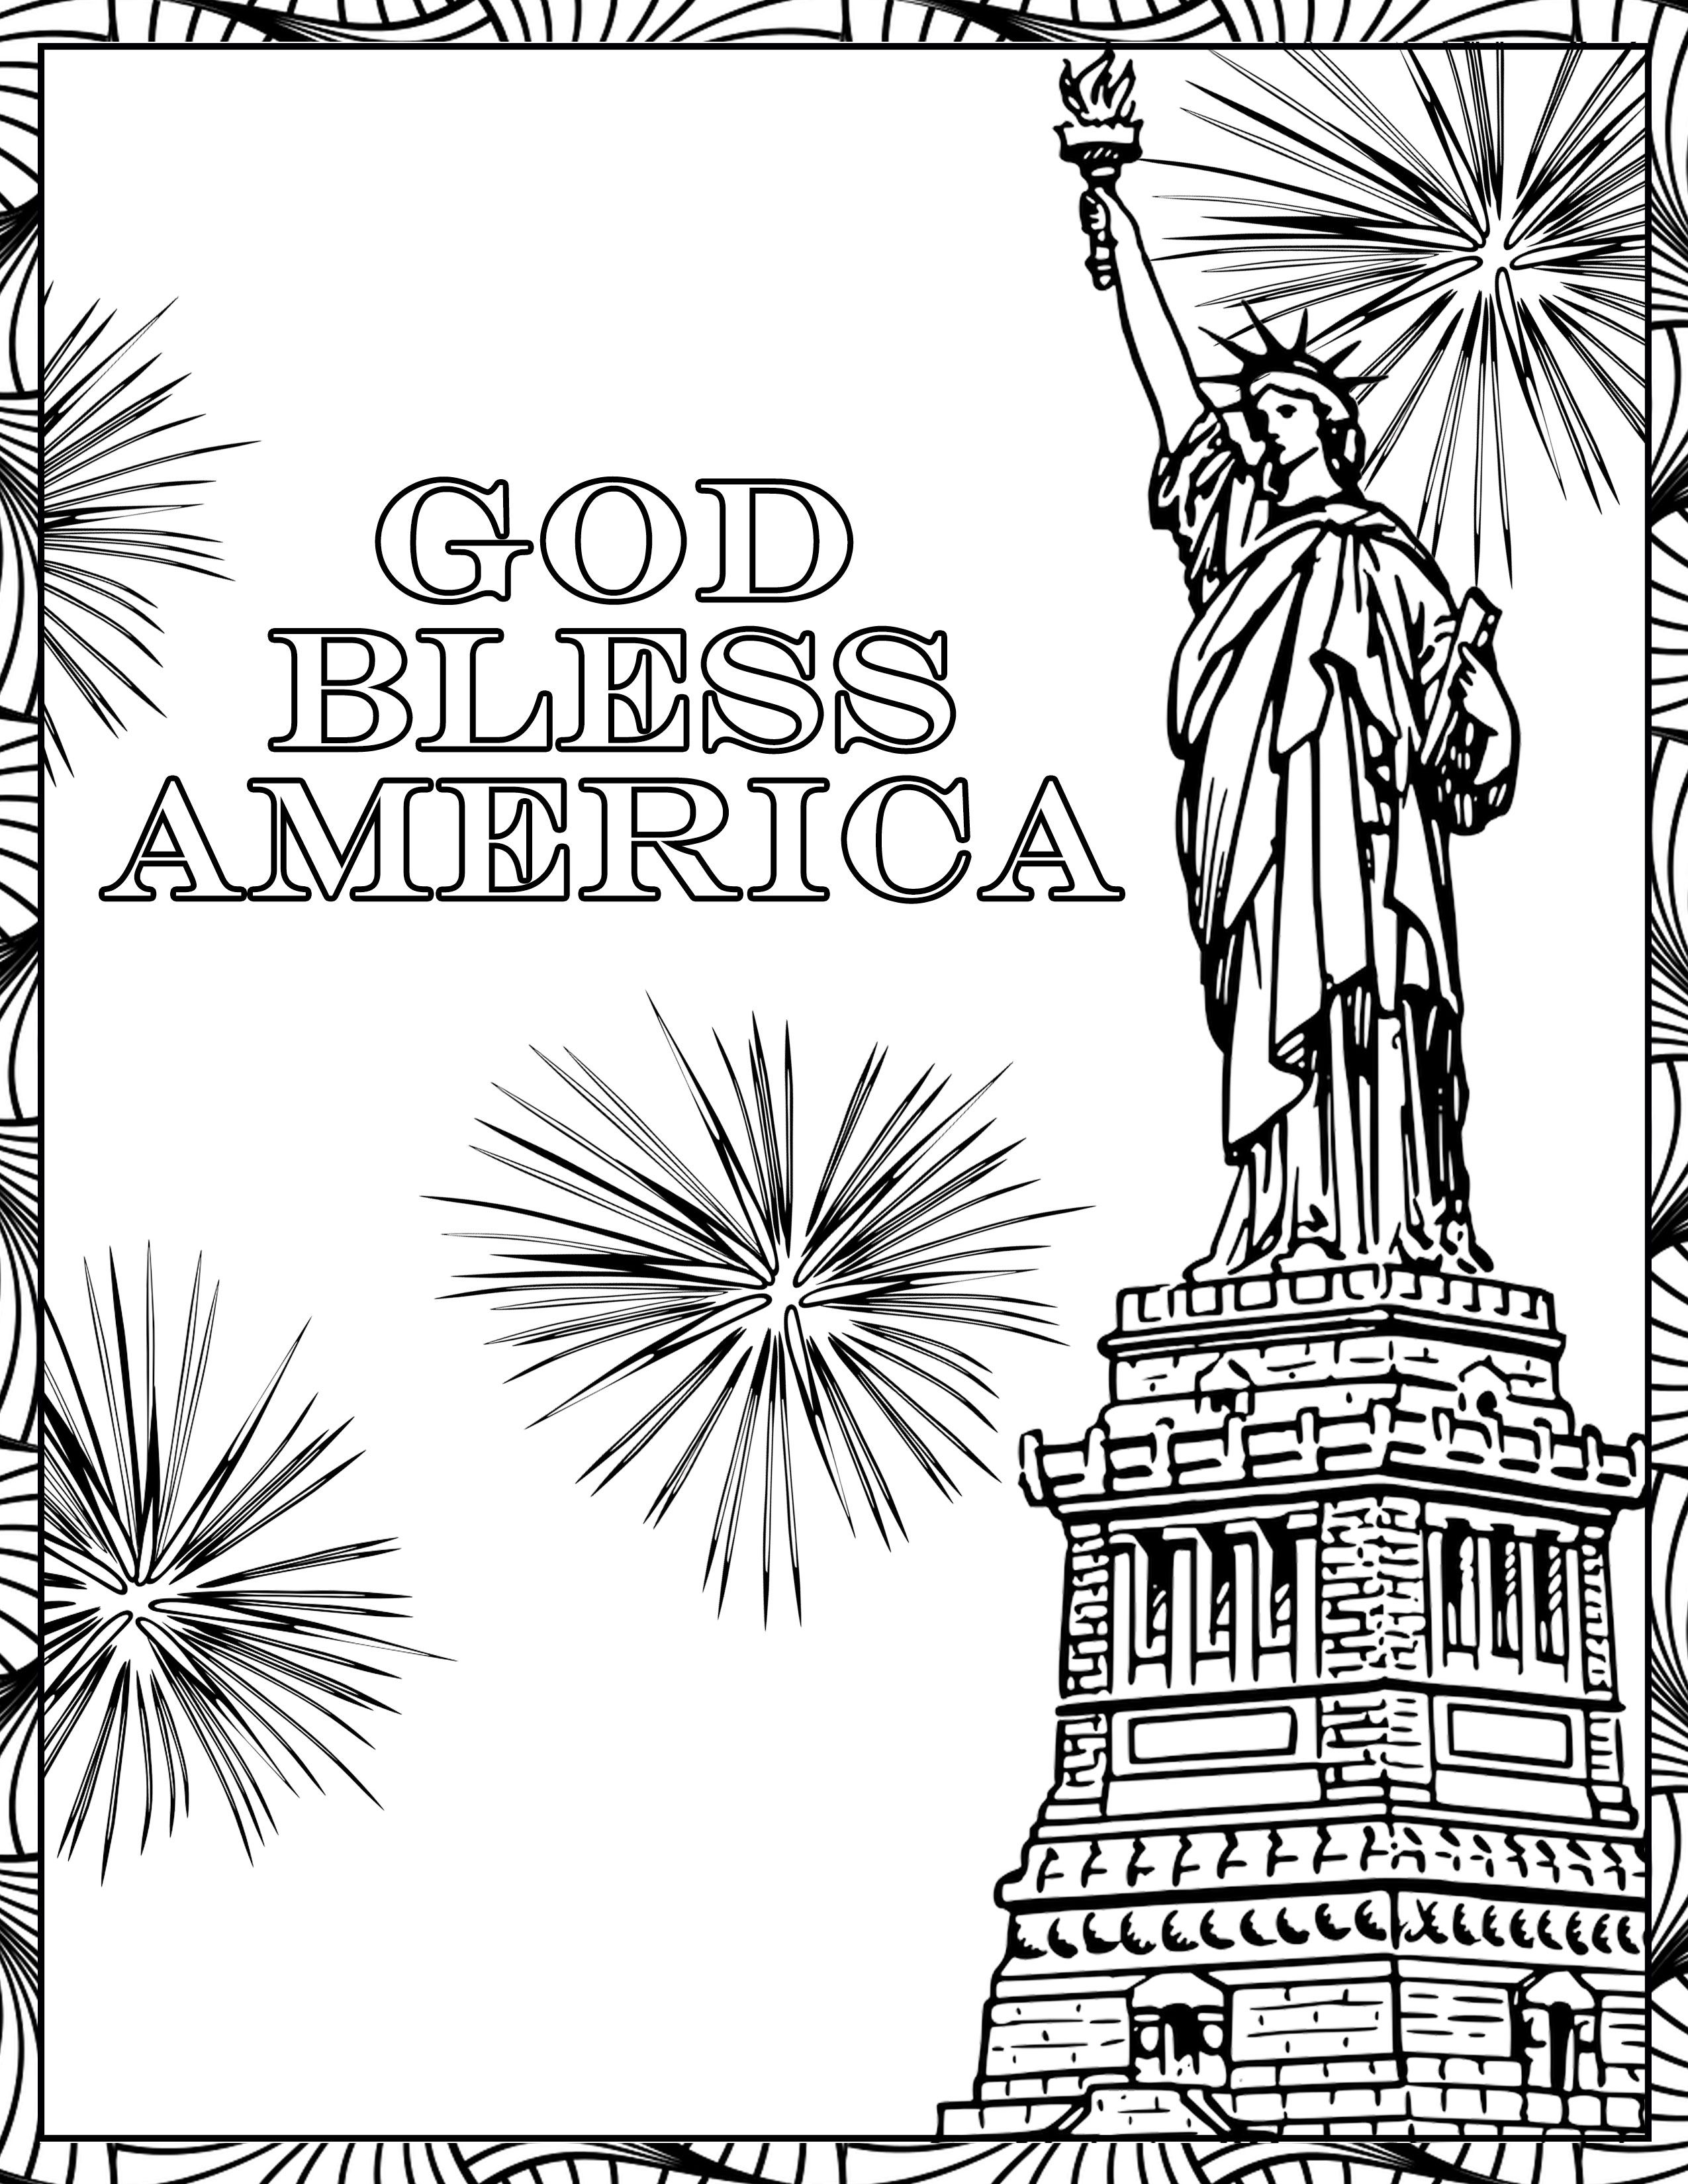 July 4th Coloring Pages Christianbook Com Blog Coloring Pages Veterans Day Coloring Page Elsa Coloring Pages